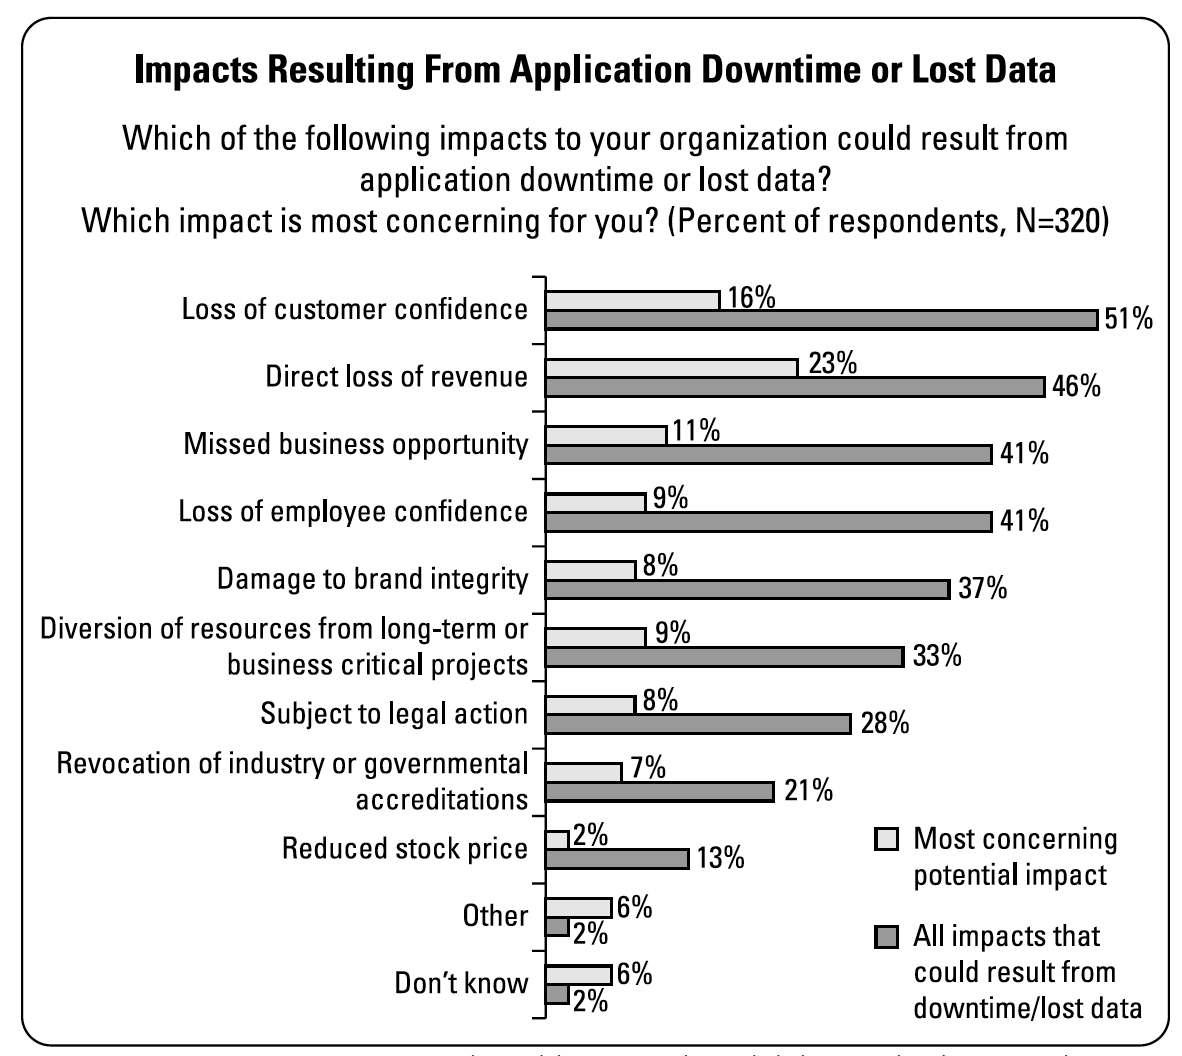 Impacts Resulting From Application Downtime or Lost Data. Source: ESG Real World SLAs and Availability Methods, December 2017